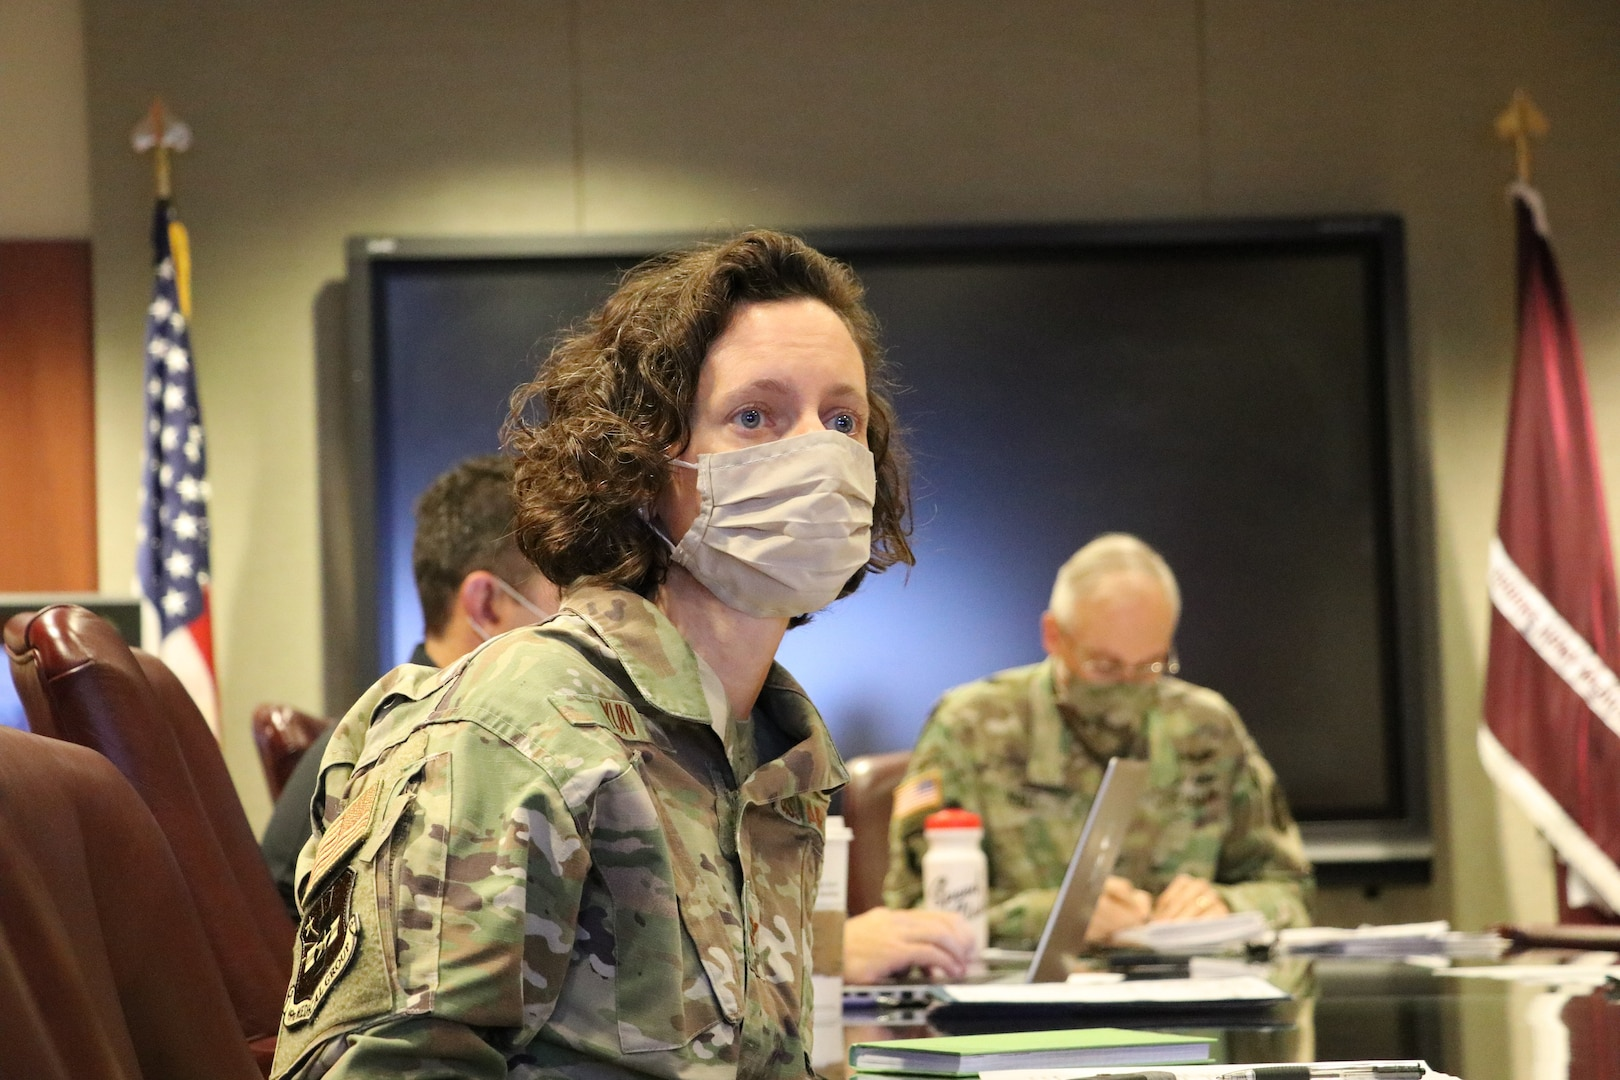 U.S. Air Force Col. Heather Yun, Deputy Commander for Medical Services, Brooke Army Medical Center, answers COVID-19 questions during a video teleconference with Argentine Army doctors, Oct. 21, 2020. Yun was part of a BAMC panel of medical professionals discussing lessons learned with a like panel of Argentine Army doctors to provide a compilation of best practices in response to the COVID-19 pandemic and other health-related topics. (U.S. Army photo by Robert A. Whetstone)